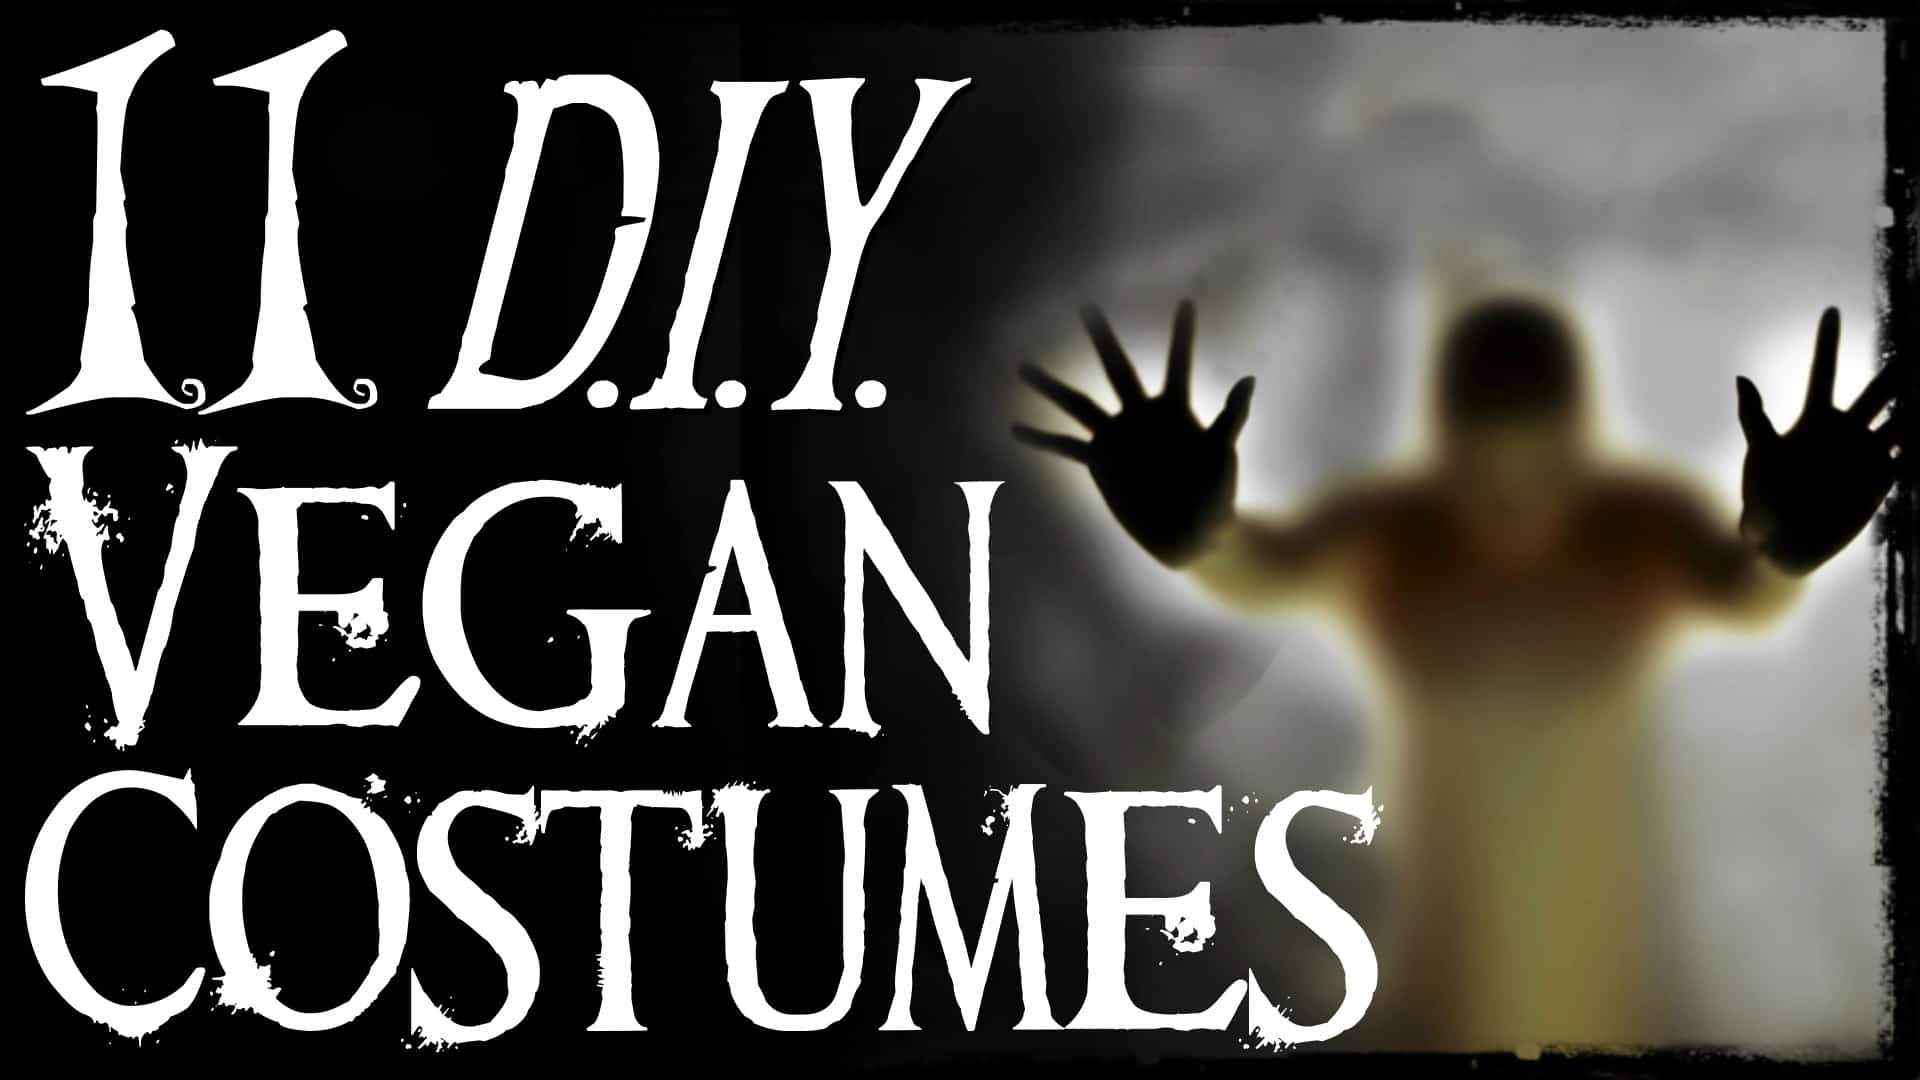 """A shadowy figure is shown on the right, facing the camera, arms up. It is out of focus, aside from the hands which are splayed as if up against a window. On the left, in large letters, are the words 11 D.I.Y. Vegan costumes"""""""